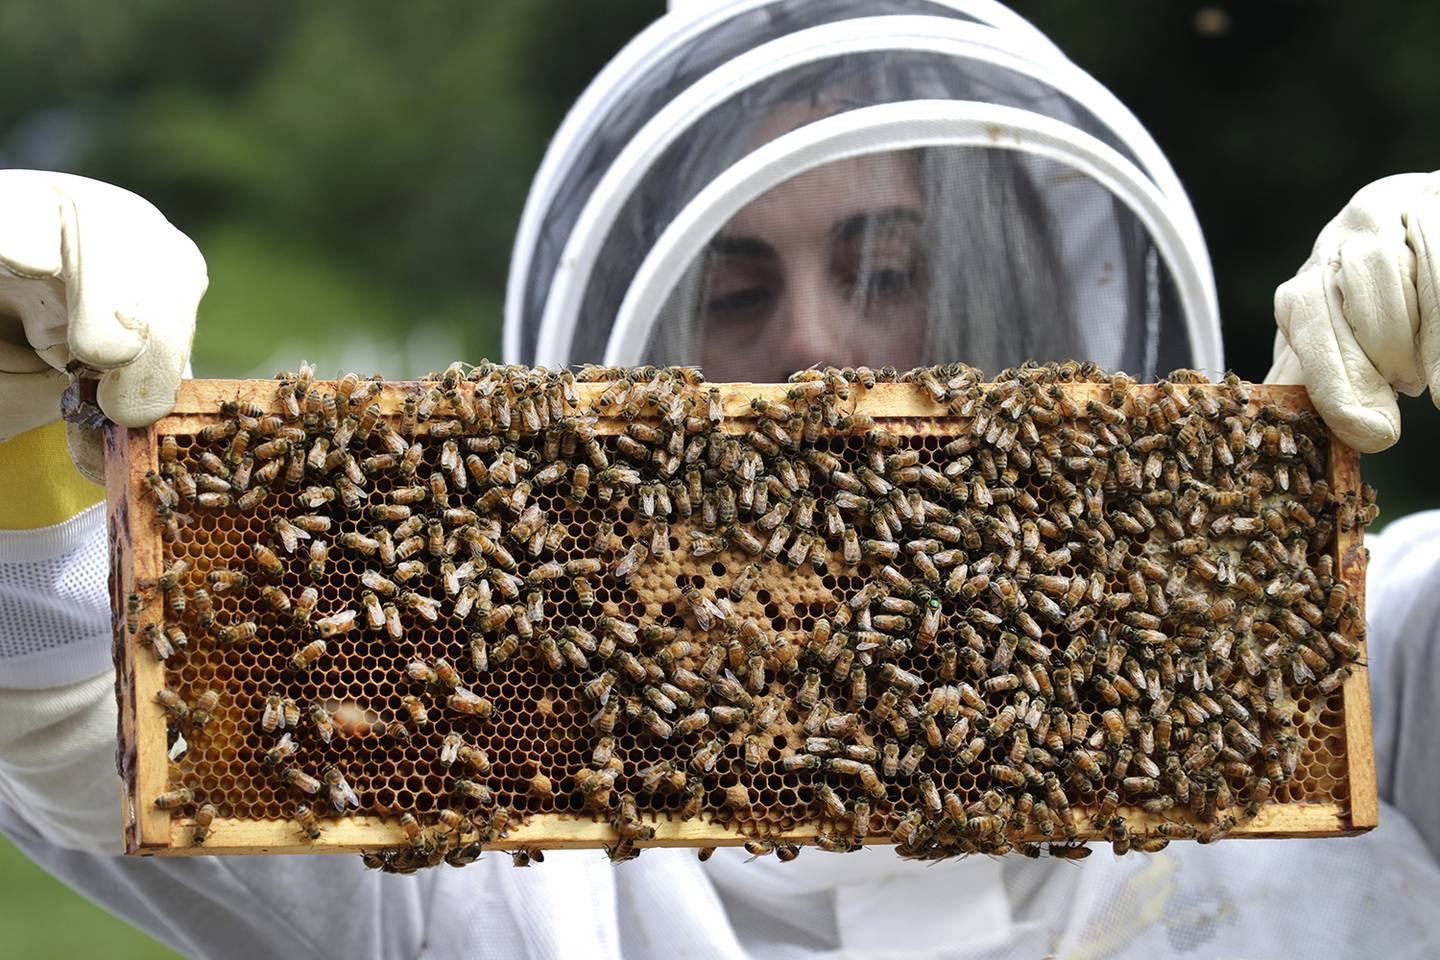 In this Aug. 7, 2019, photo, U.S. Army veteran Wendi Zimmermann transfers a frame of bees to a new box, while checking them for disease and food supply at the Veterans Affairs' beehives in Manchester, N.H.